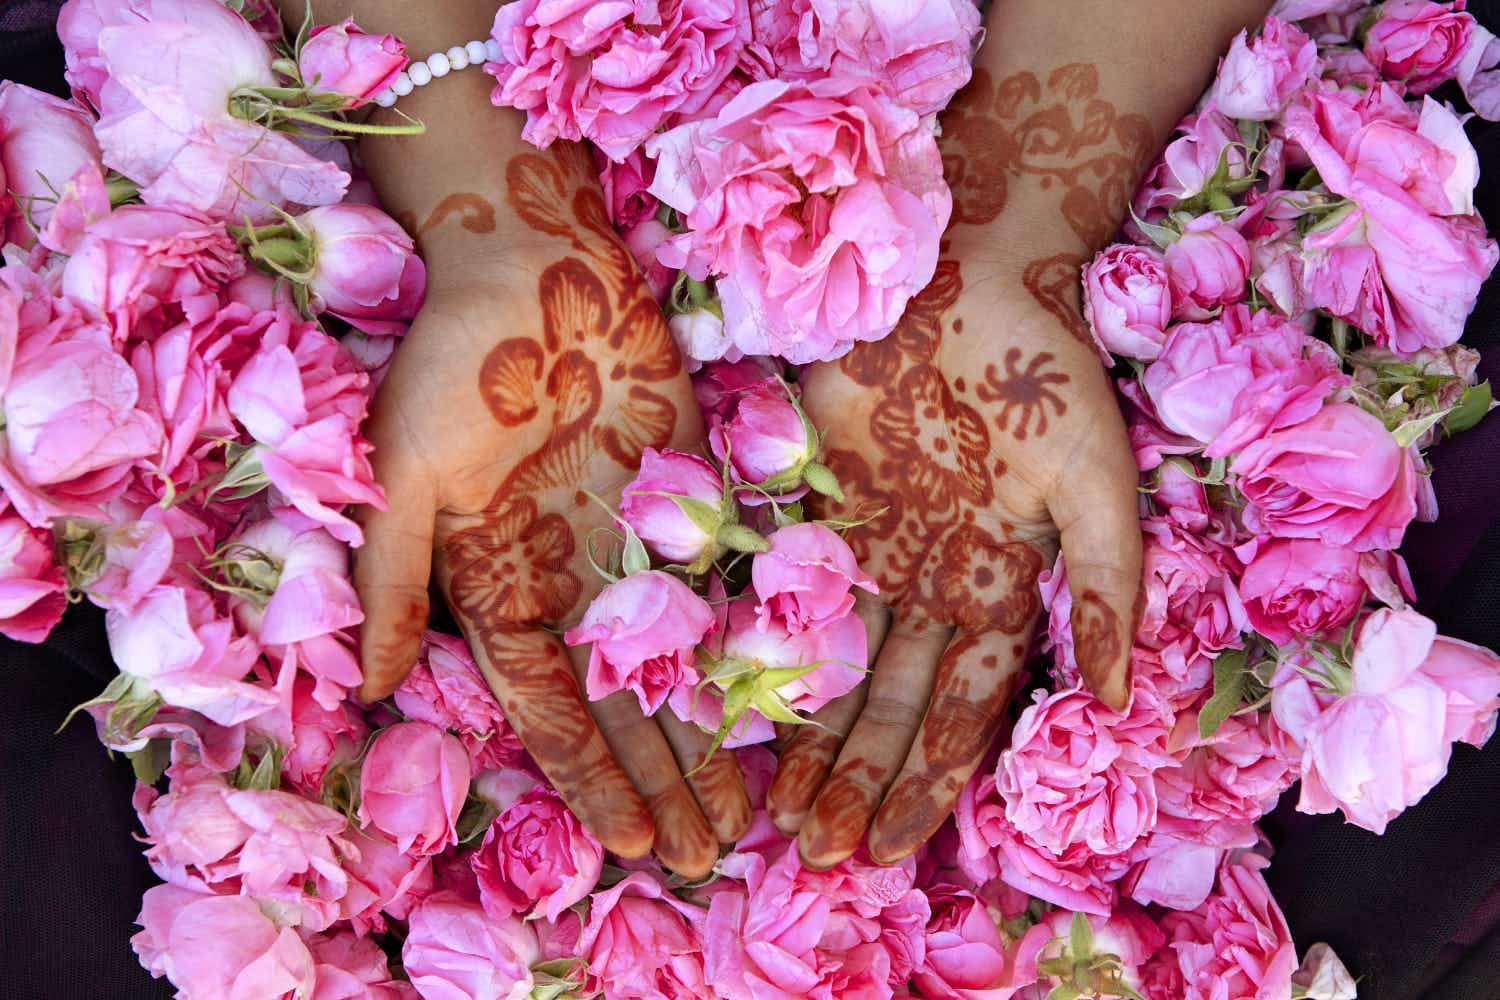 LPT Morocco May 2016 - Fresh roses in the hands of Latifa Abrouch, a local young woman who picks them. The hand decoration is henna, used to decorate for festive occasions and also to aid healing. The black netting seen under the roses is a fine collecting bag used when picking; to shade the buds from the sun and to prevent bruising to the petals.